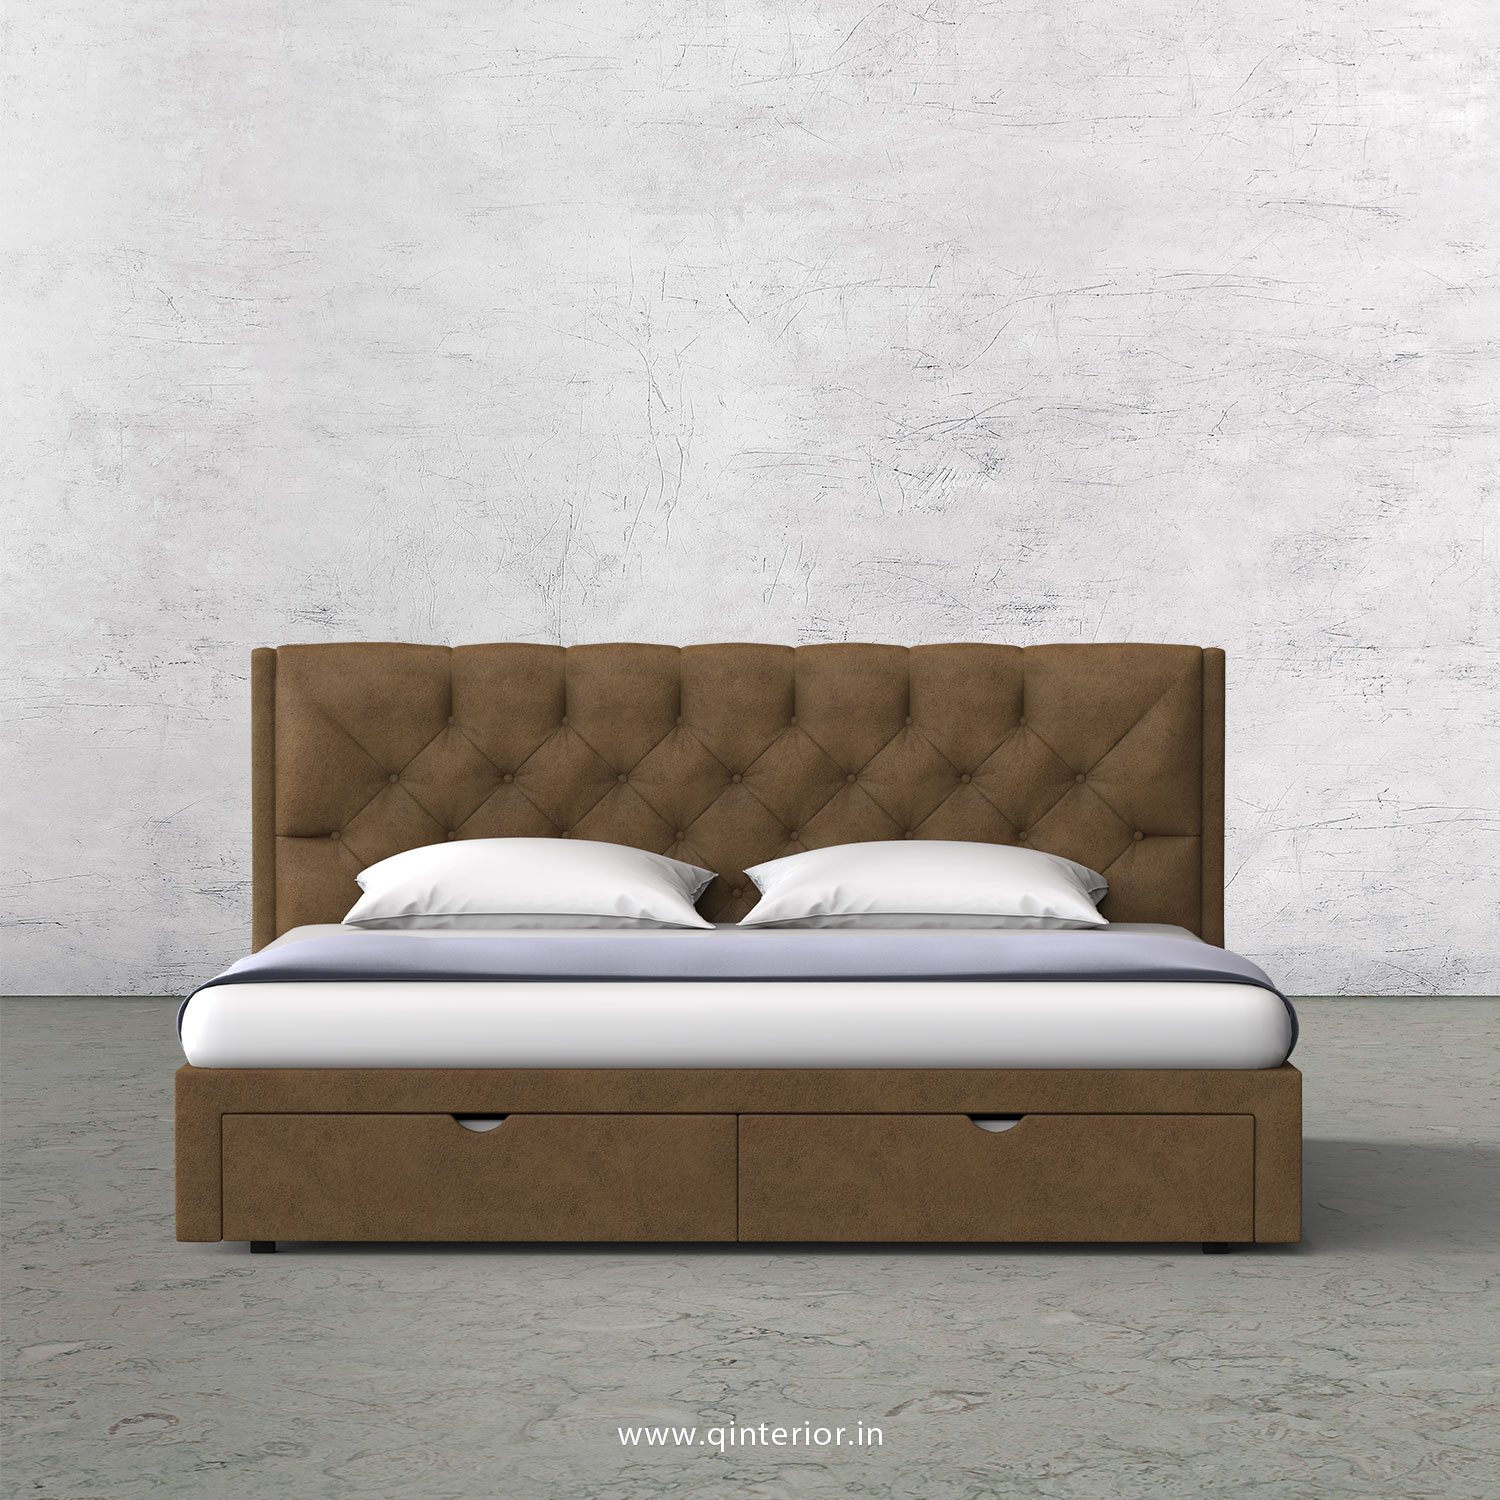 Scorpius Queen Storage Bed in Fab Leather Fabric - QBD001 FL02